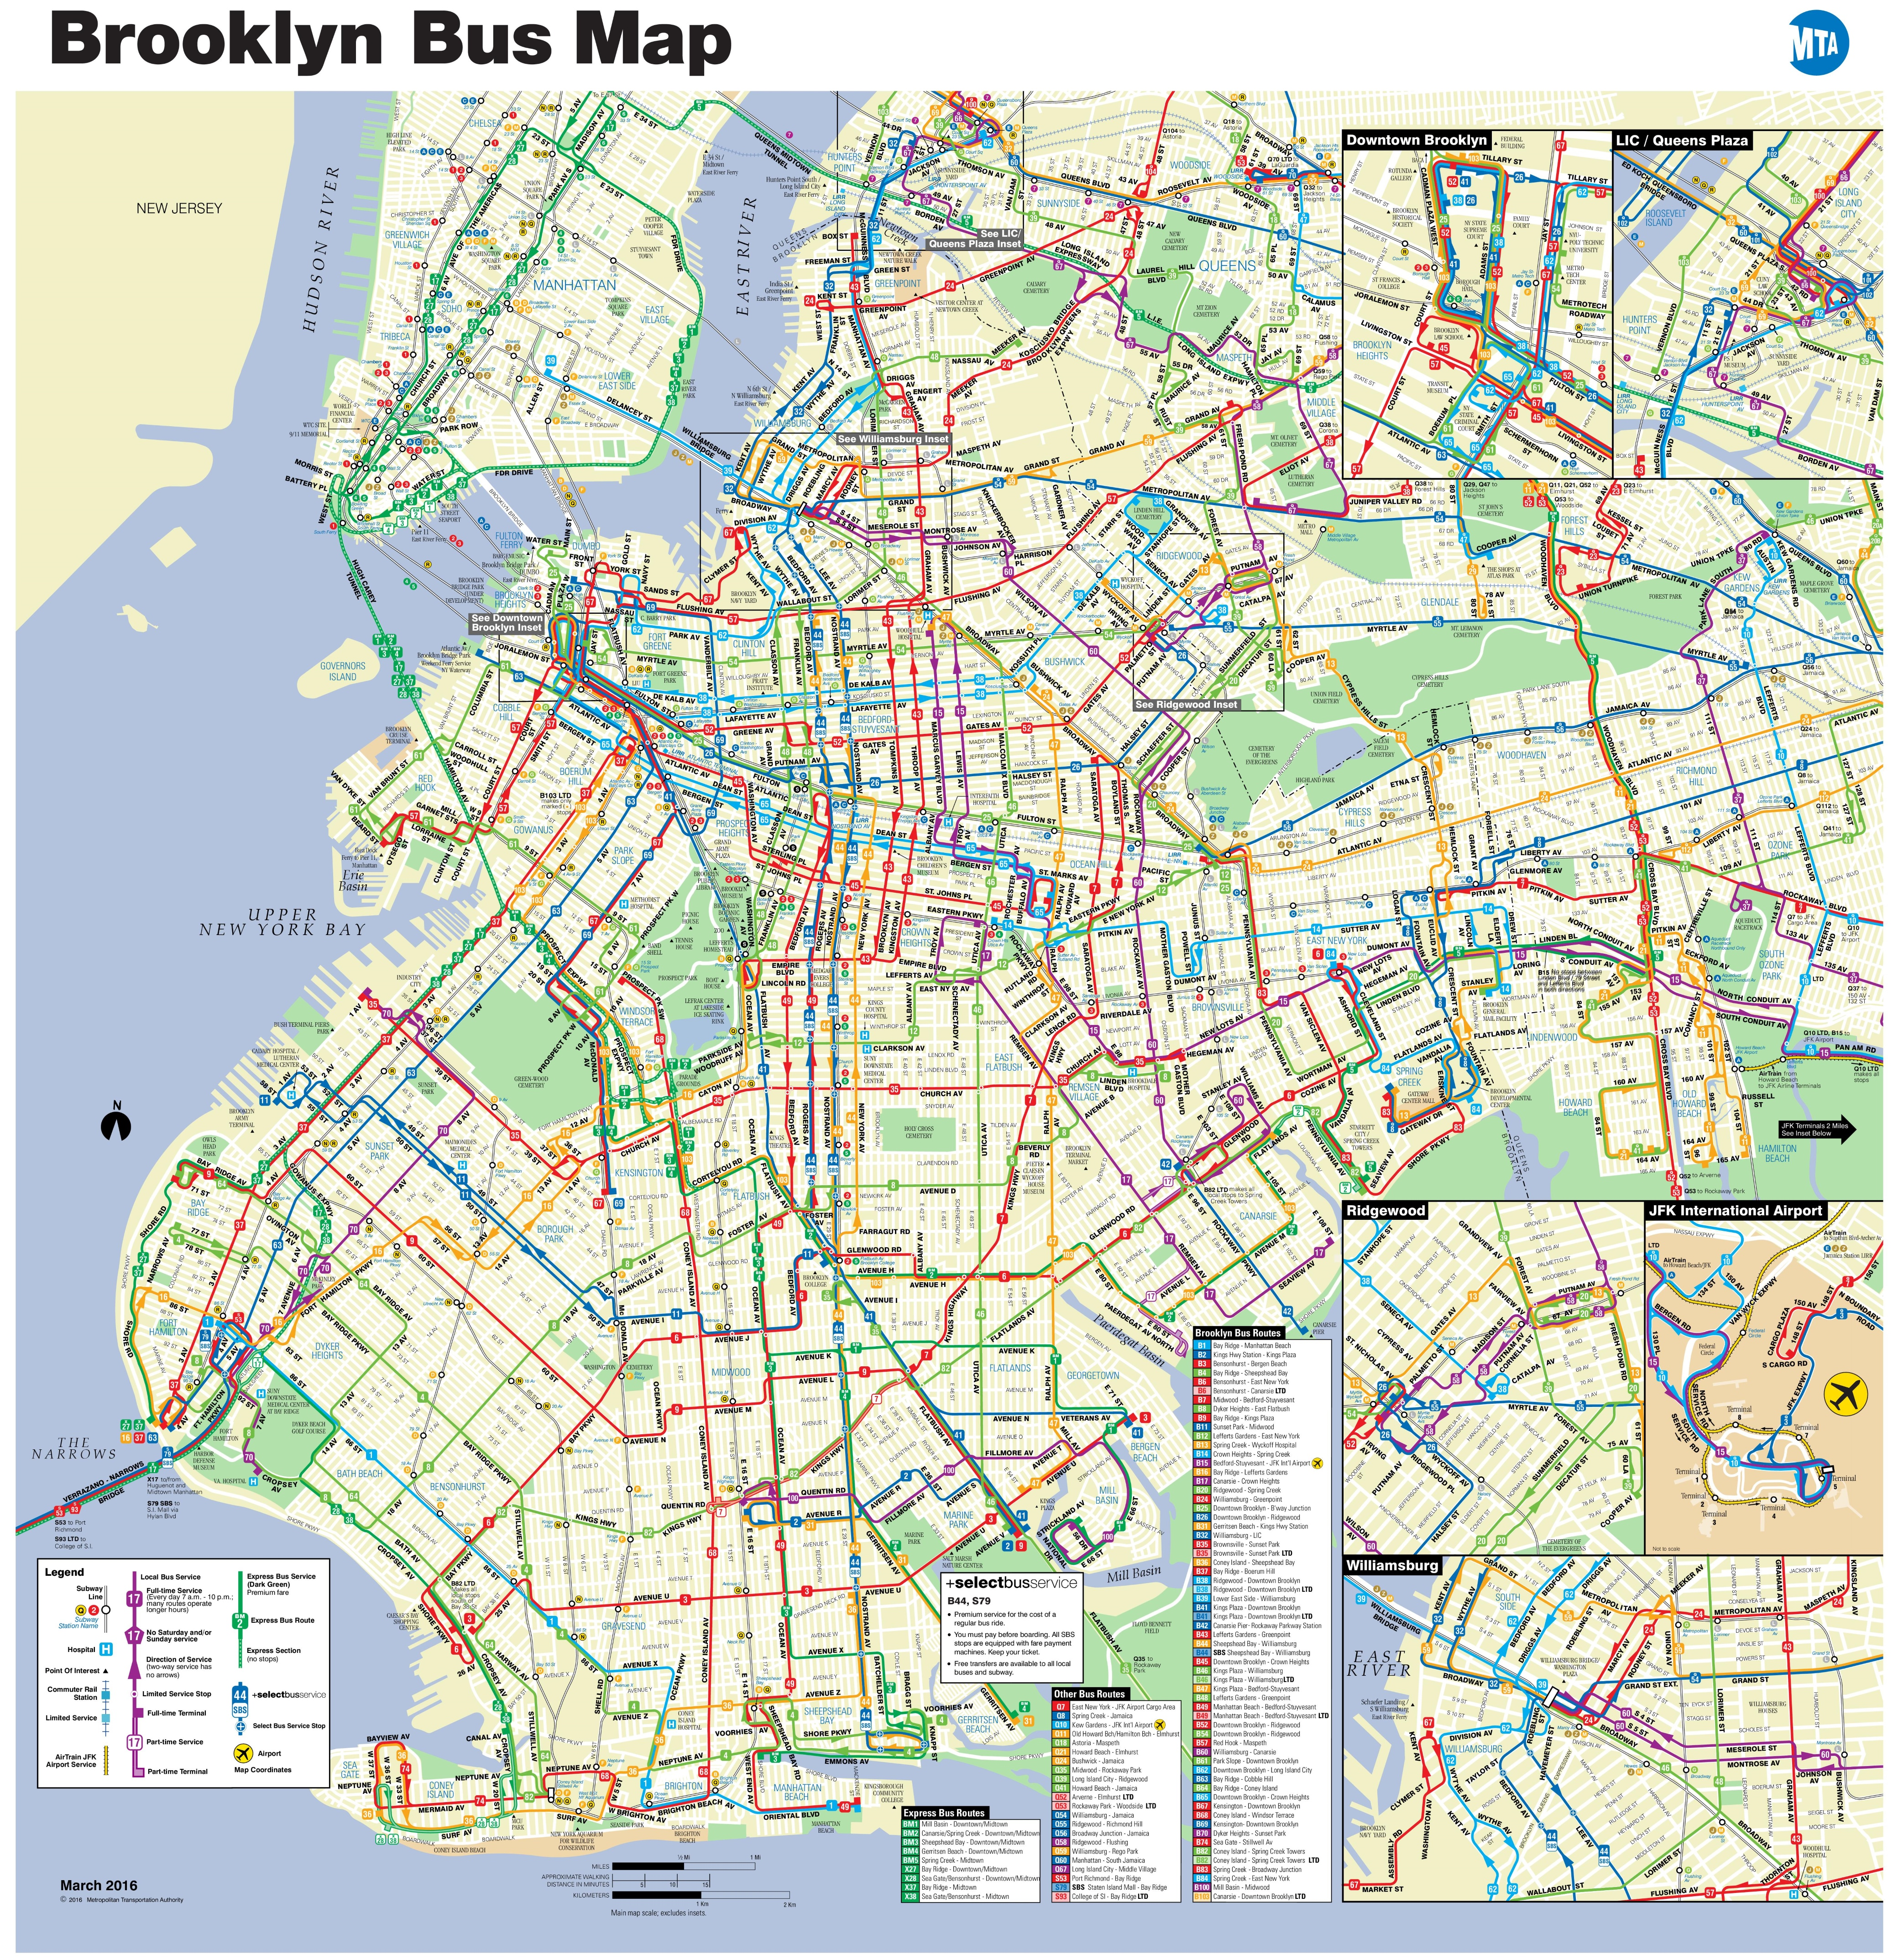 Brooklyn bus map